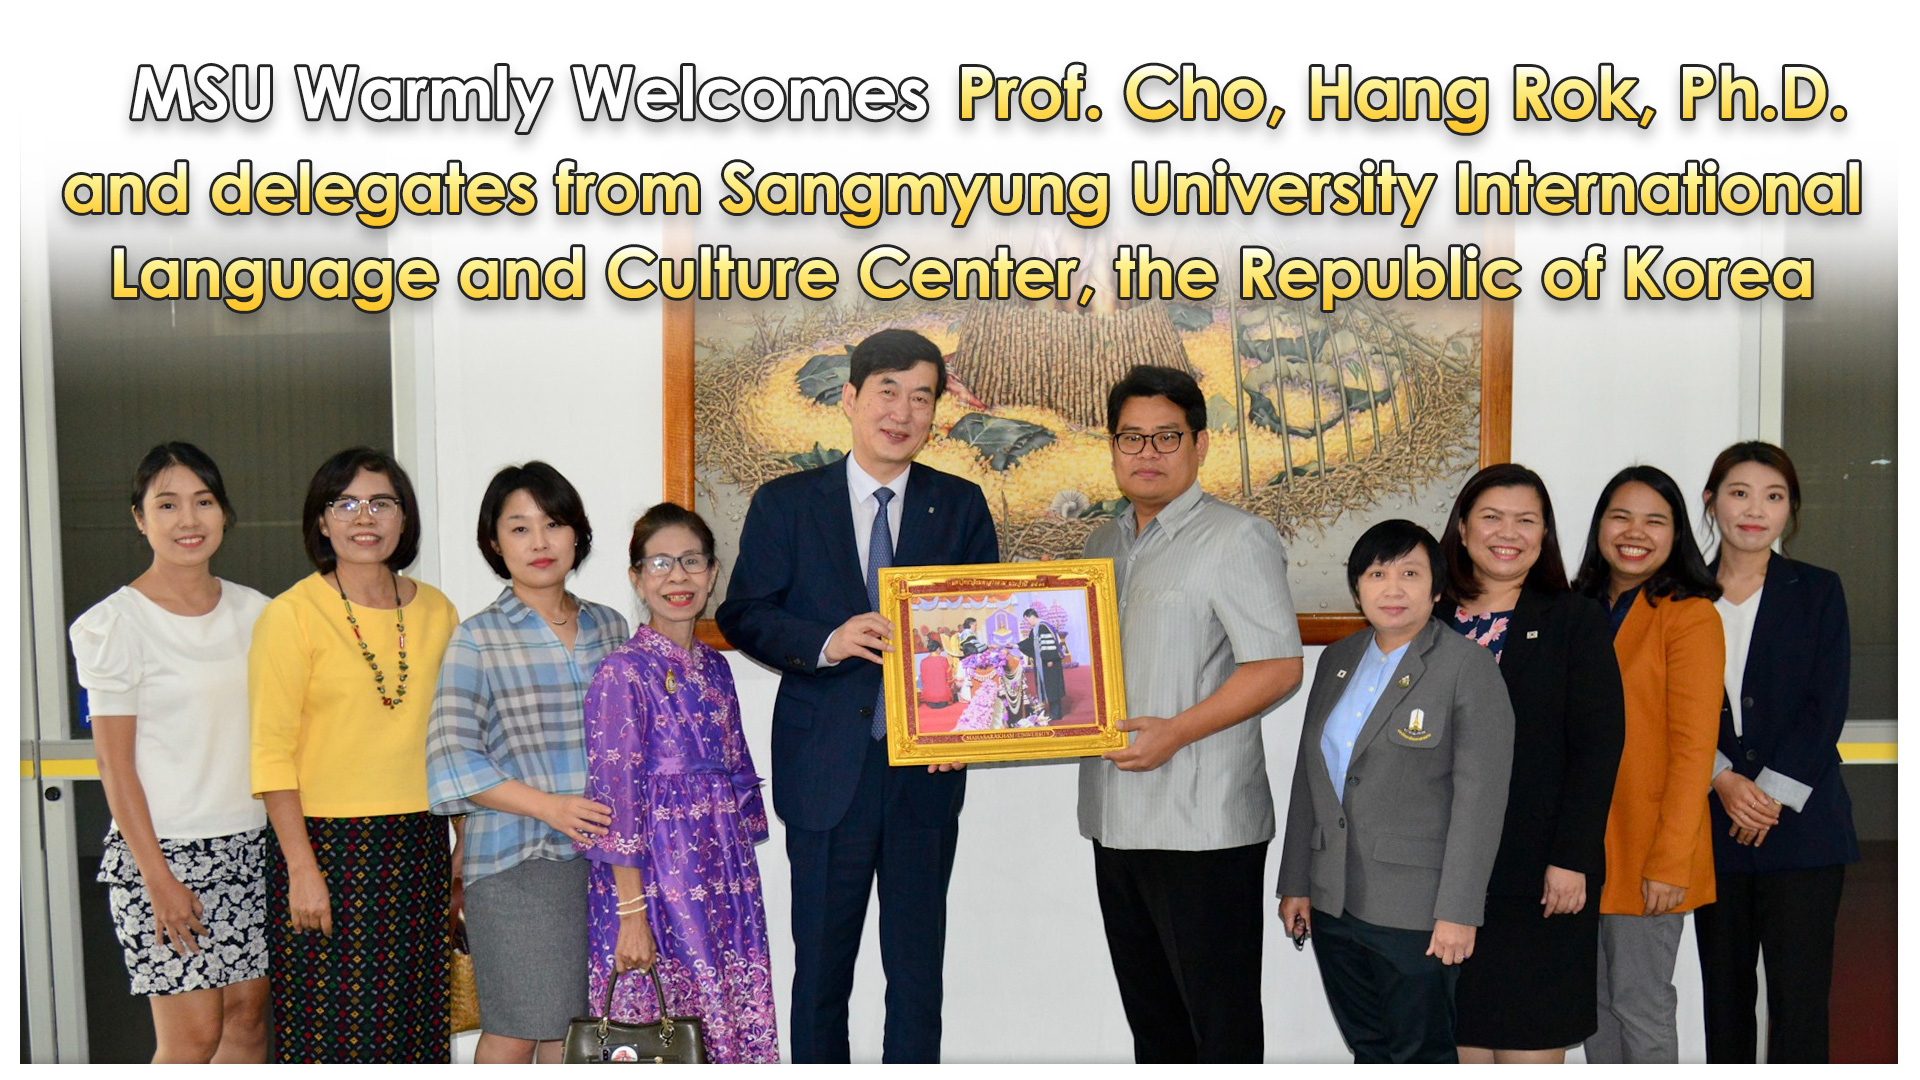 MSU Warmly Welcomes Prof. Cho, Hang Rok, Ph.D. and delegates from Sangmyung University International Language and Culture Center, the Republic of Korea